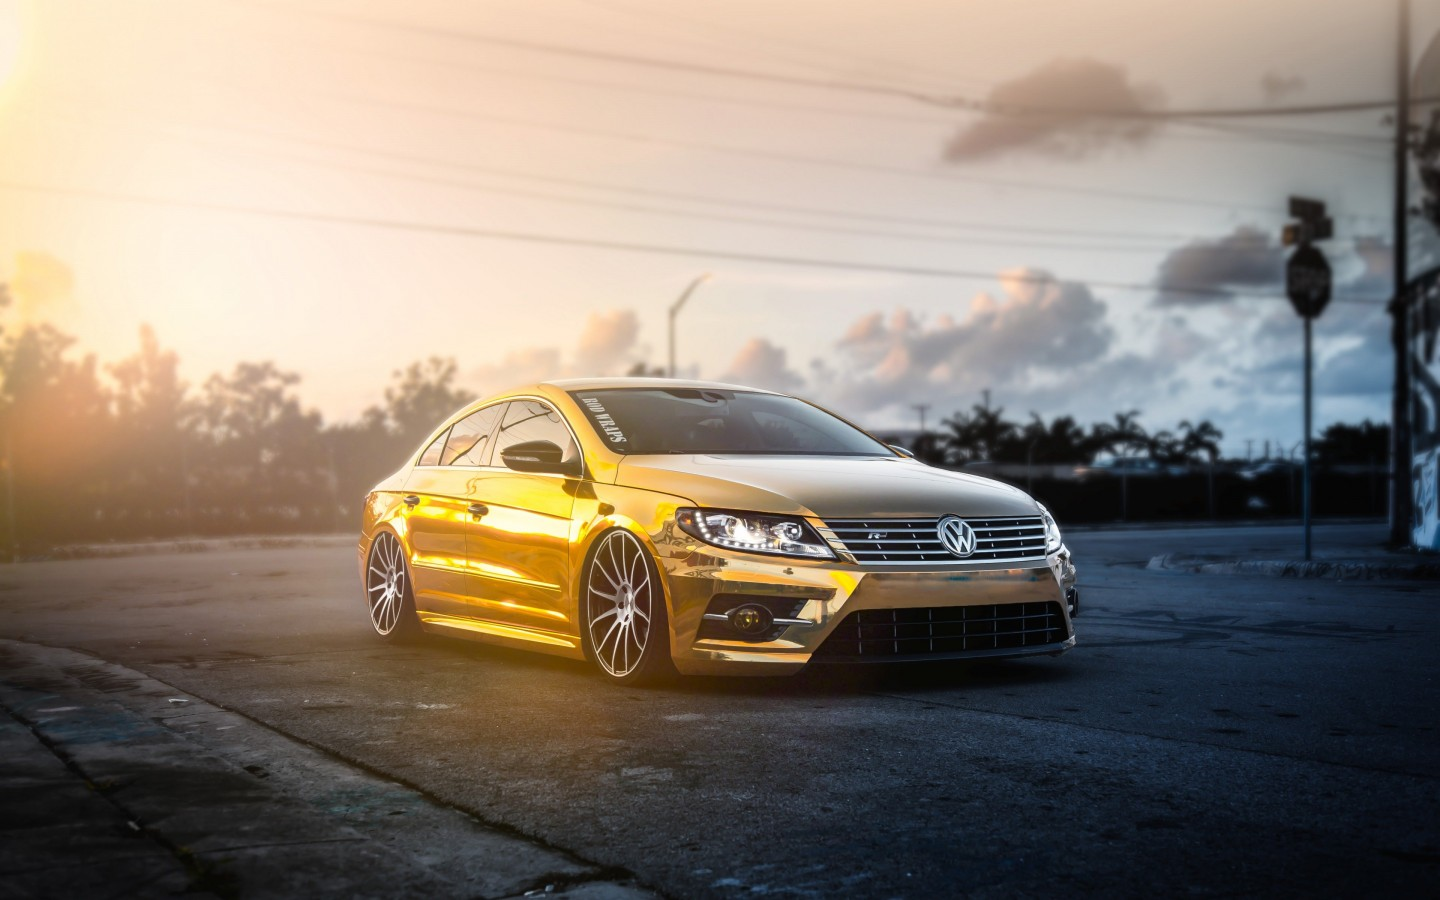 Golden Volkswagen Passat CC Wallpaper for Desktop 1440x900